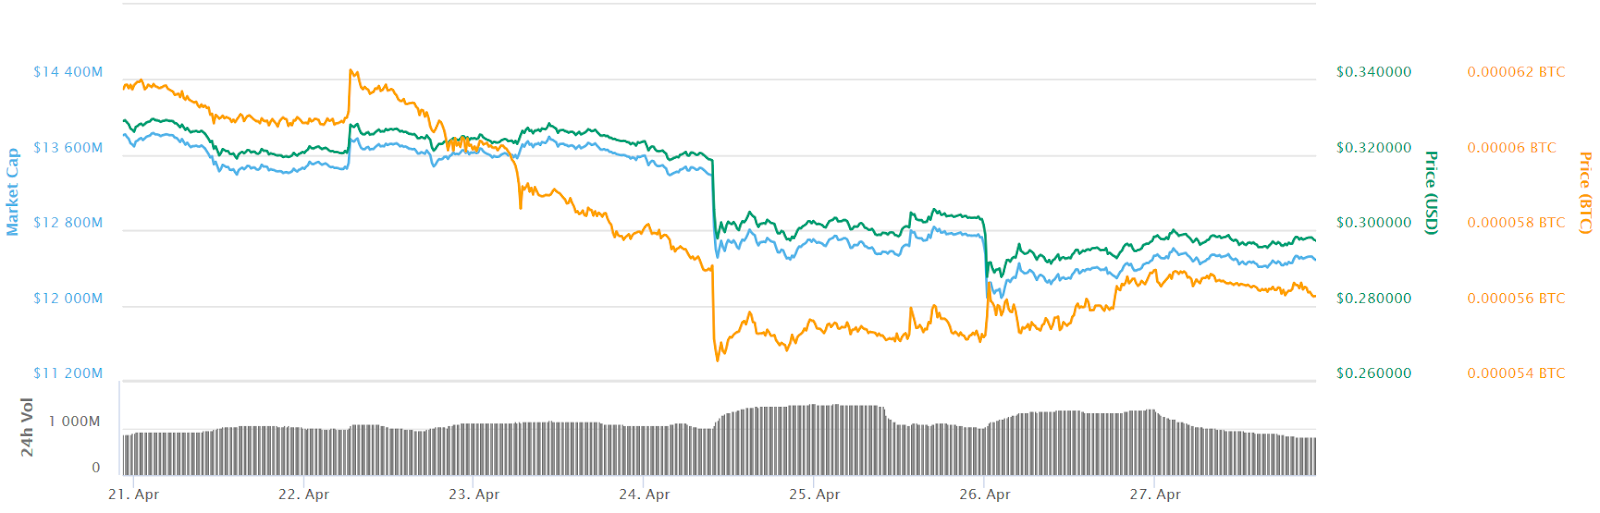 XRP 7 Days Price Chart. Source: CoinMarketCap